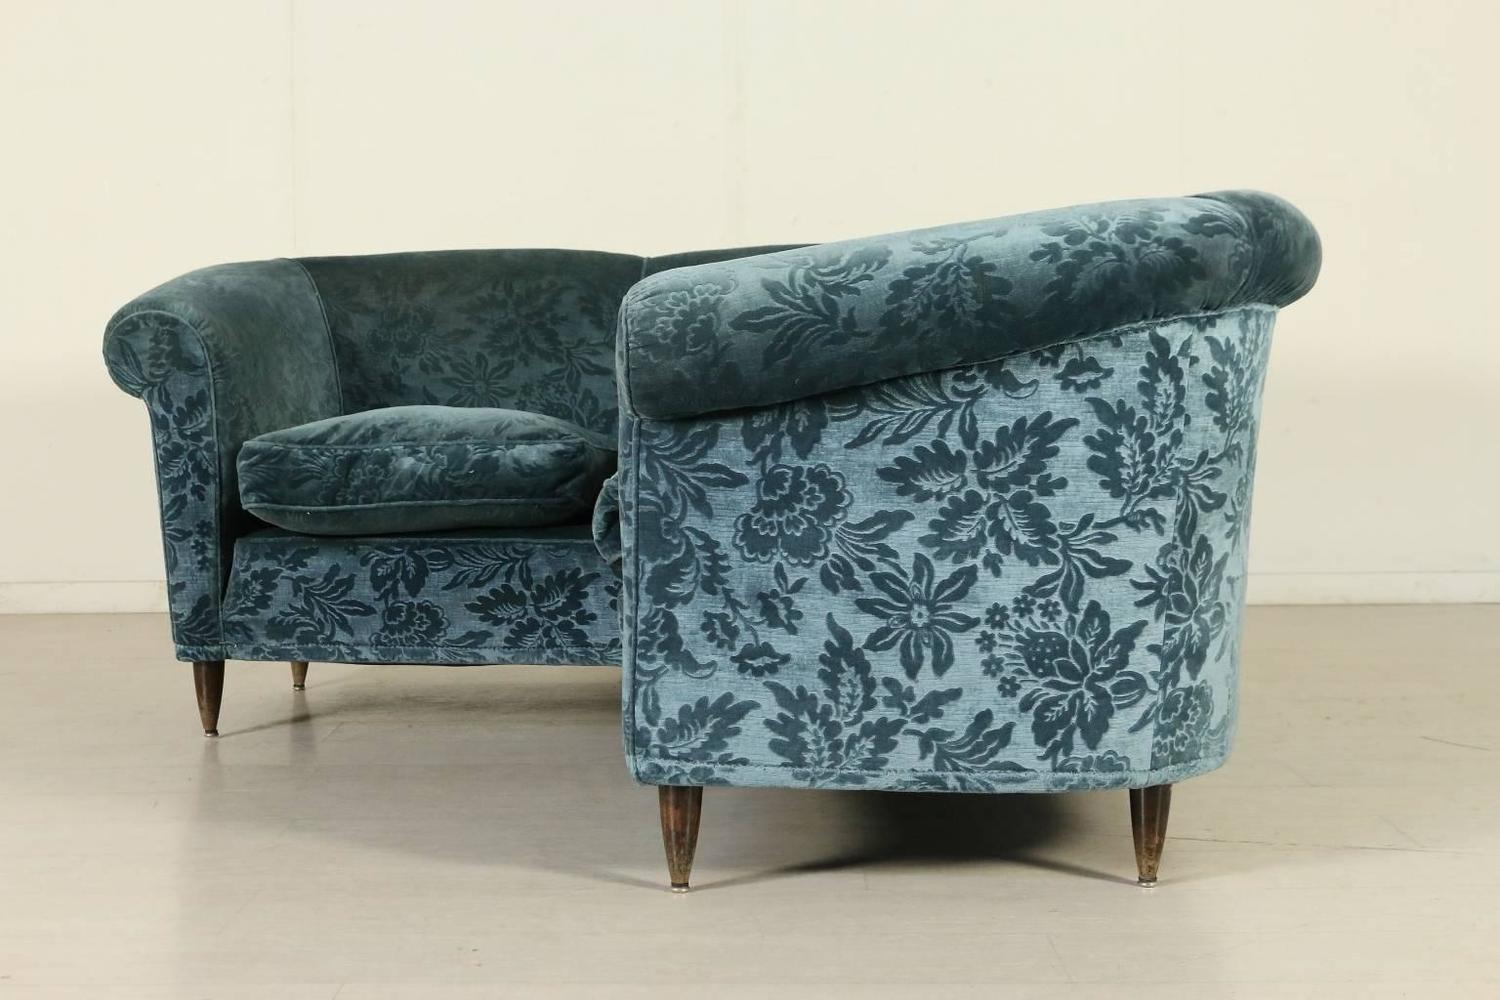 duck feather corner sofa leather and fabric mix uk springs feathers velvet vintage manufactured